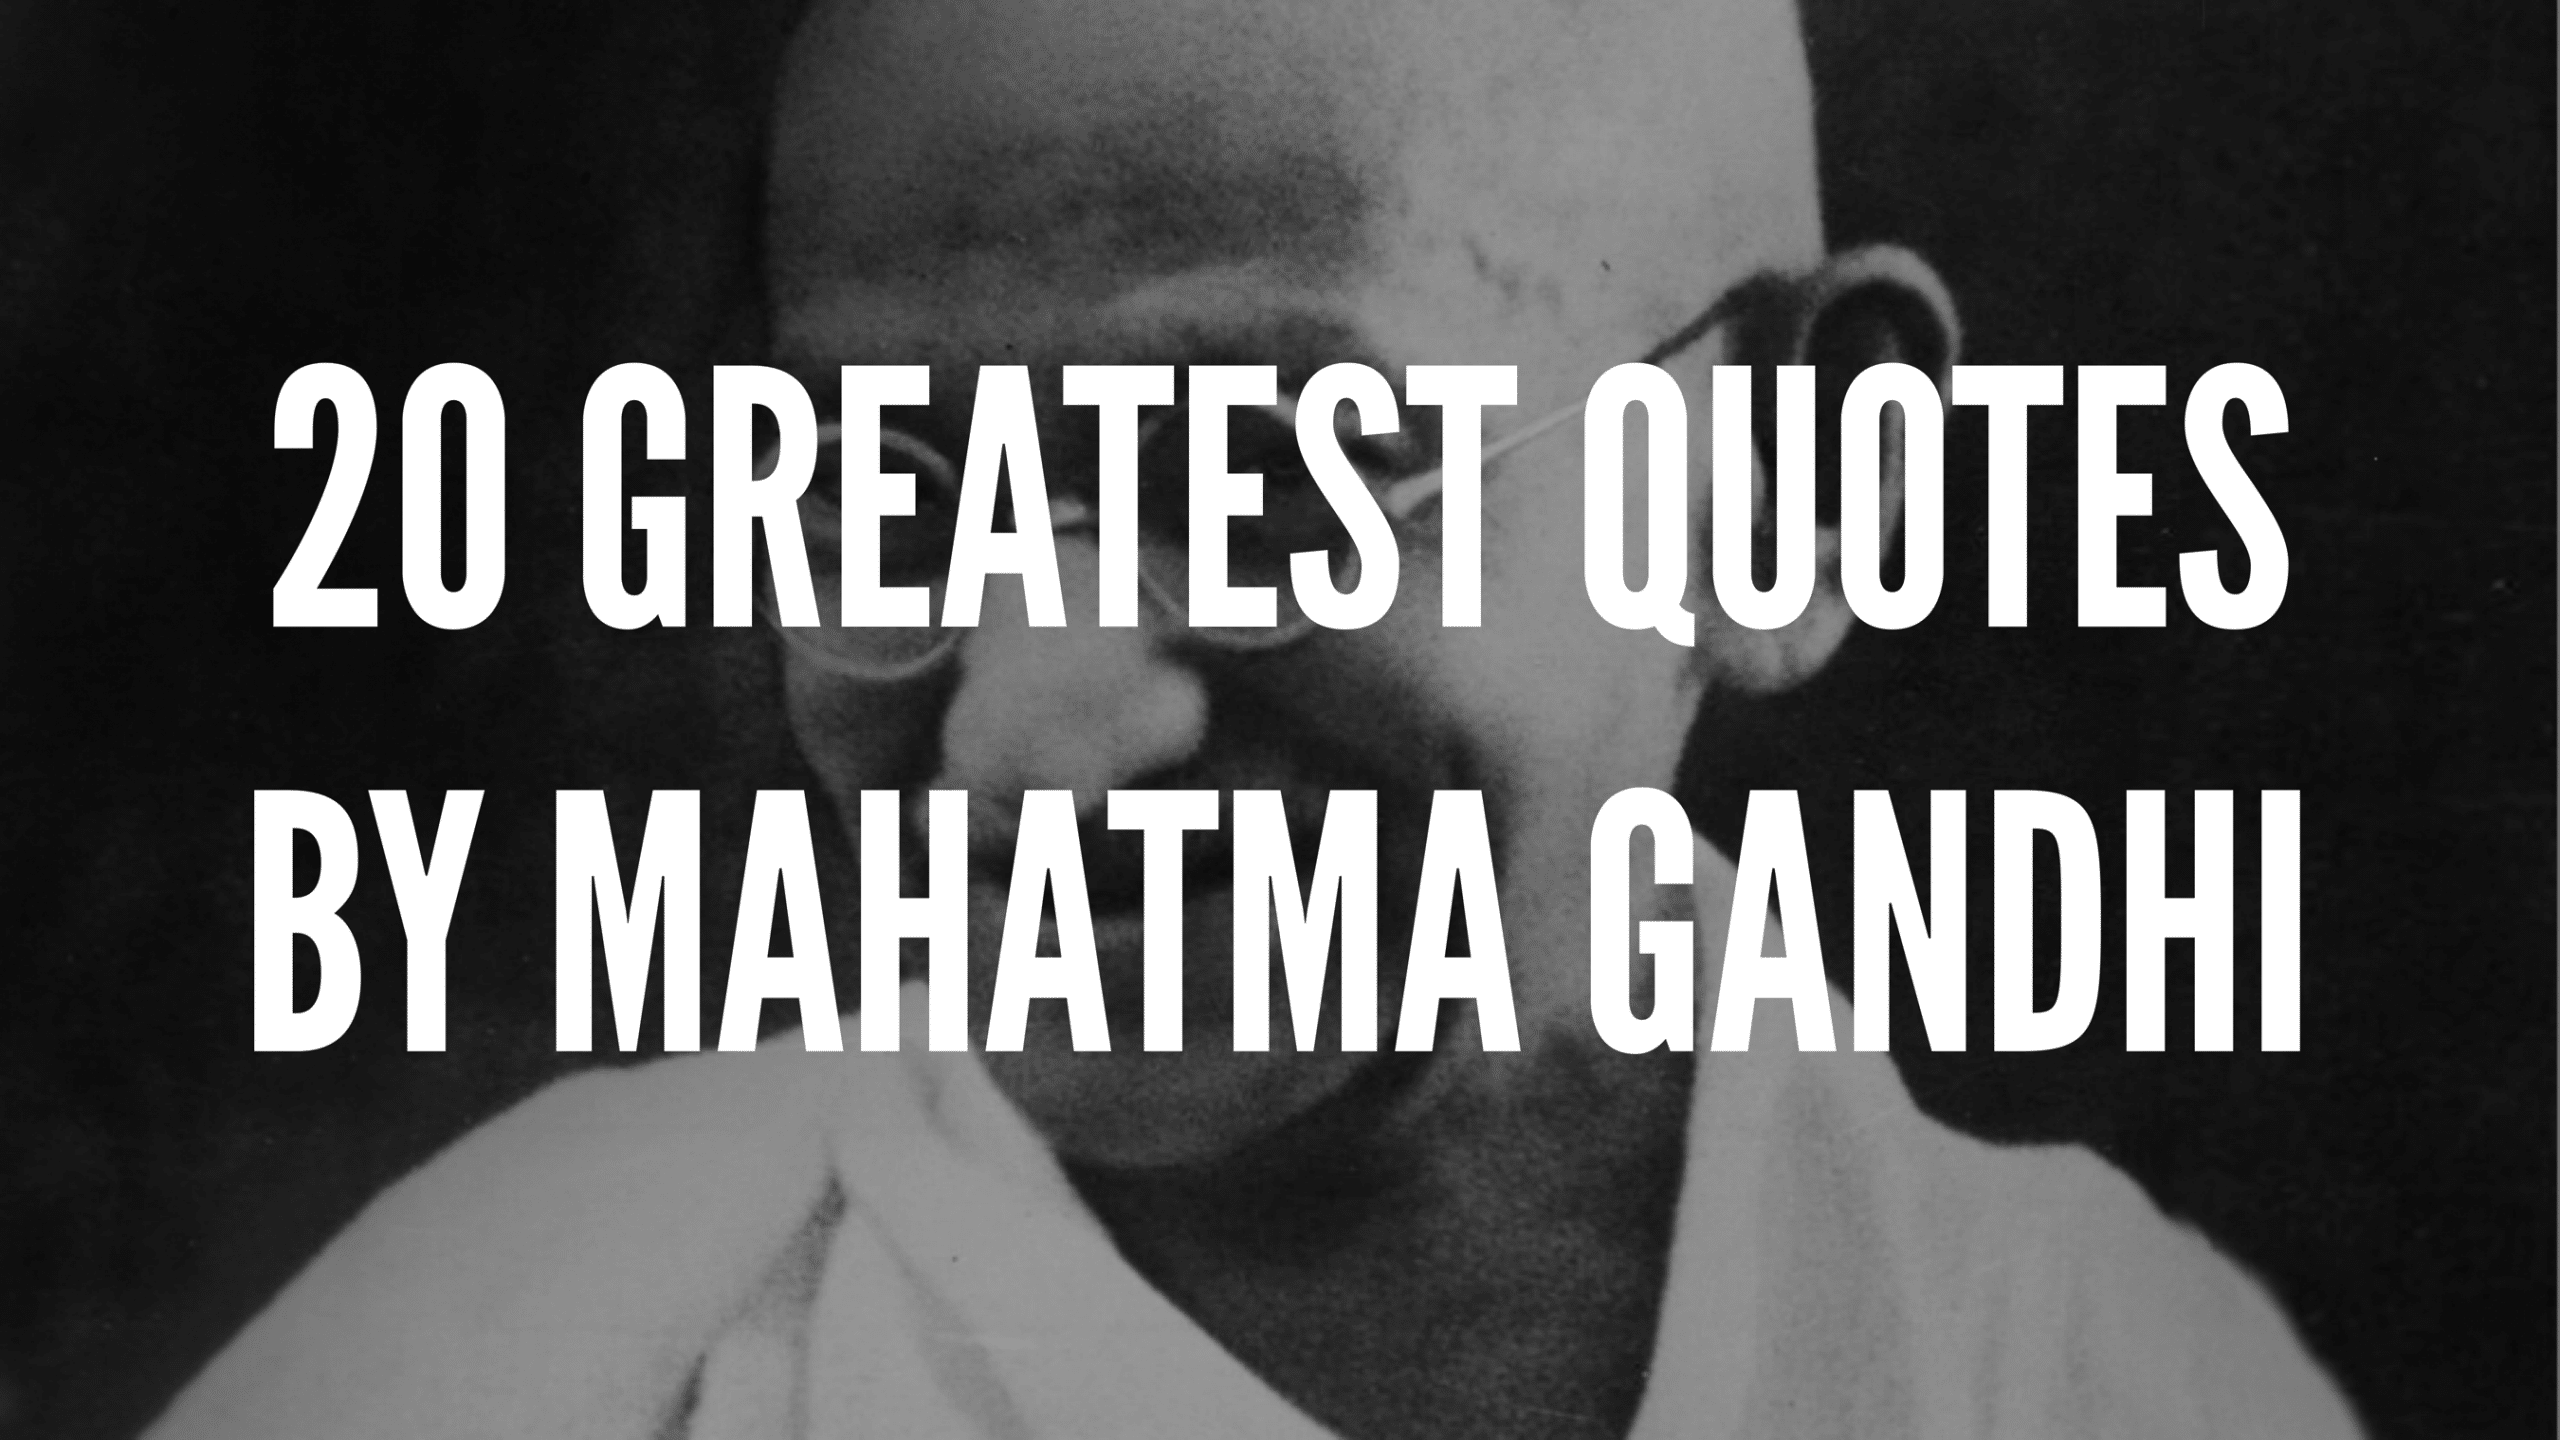 20 Greatest Quotes By Mahatma Gandhi